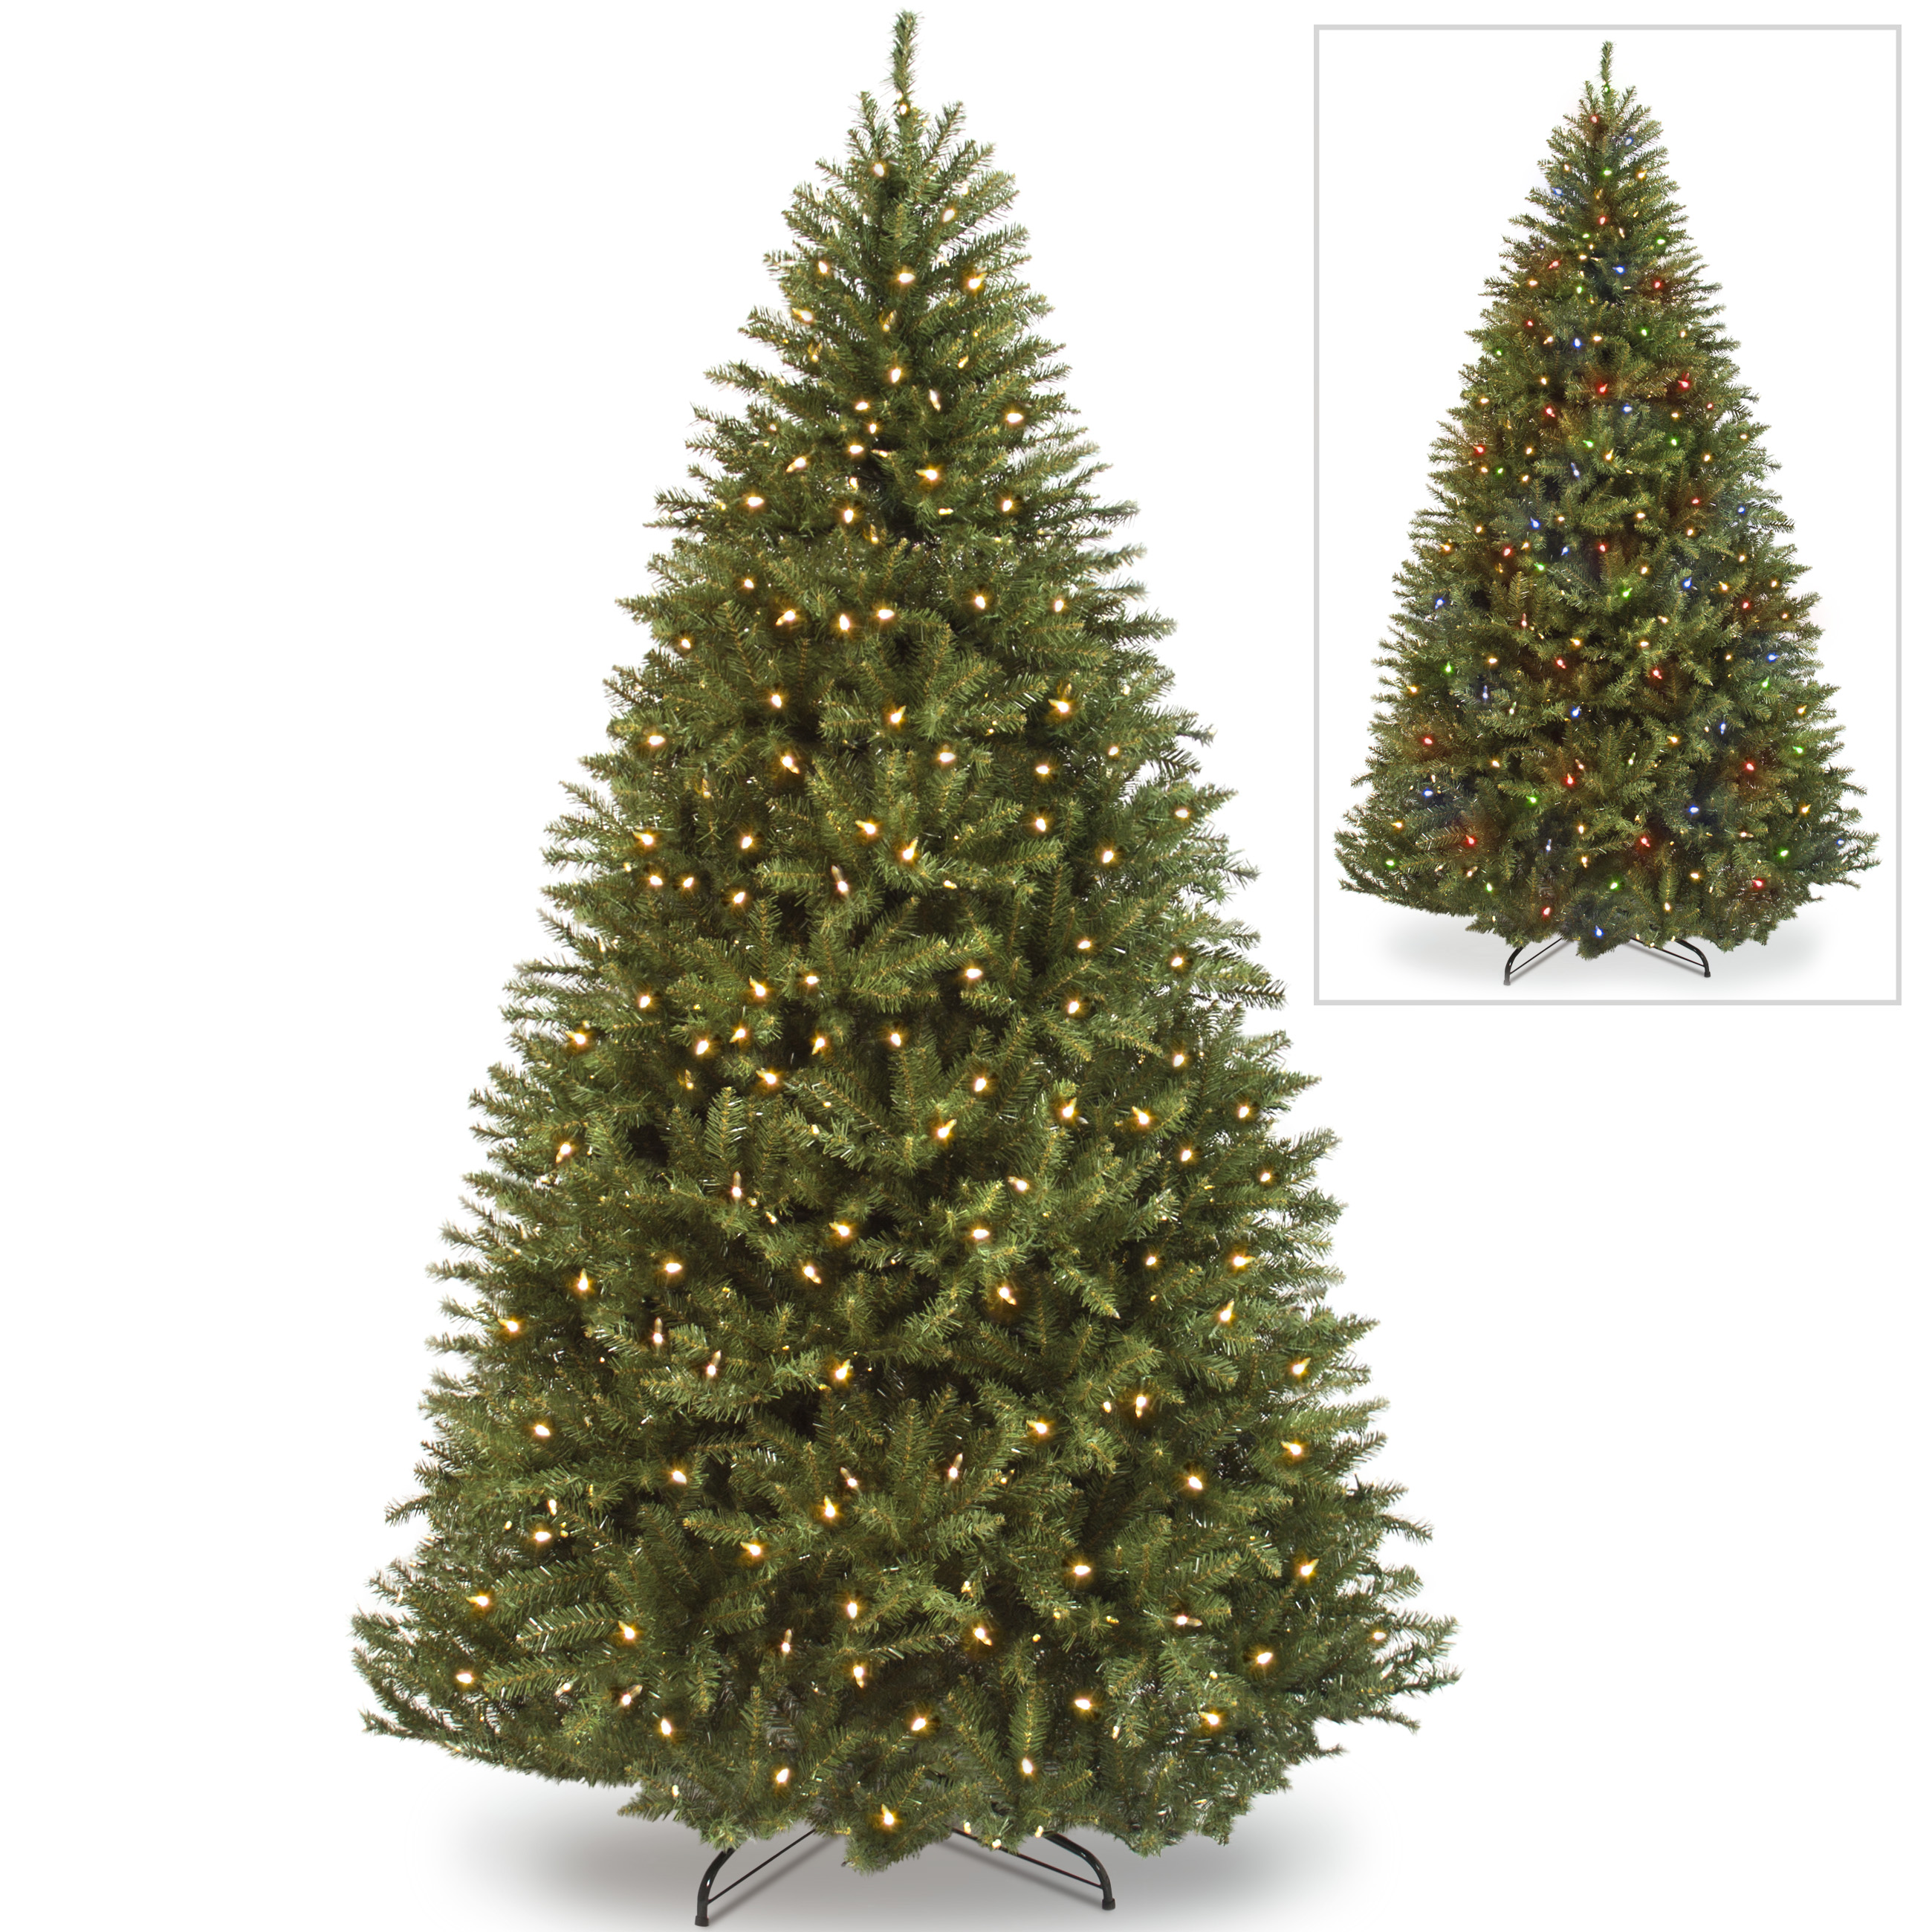 Best Choice Products 7.5ft Pre-Lit Fir Hinged Artificial Christmas Tree w/ 700 Dual Colored LED Lights, Adjustable White and Multicolored Lights, 7 Sequences, Foot Switch, Stand - Green